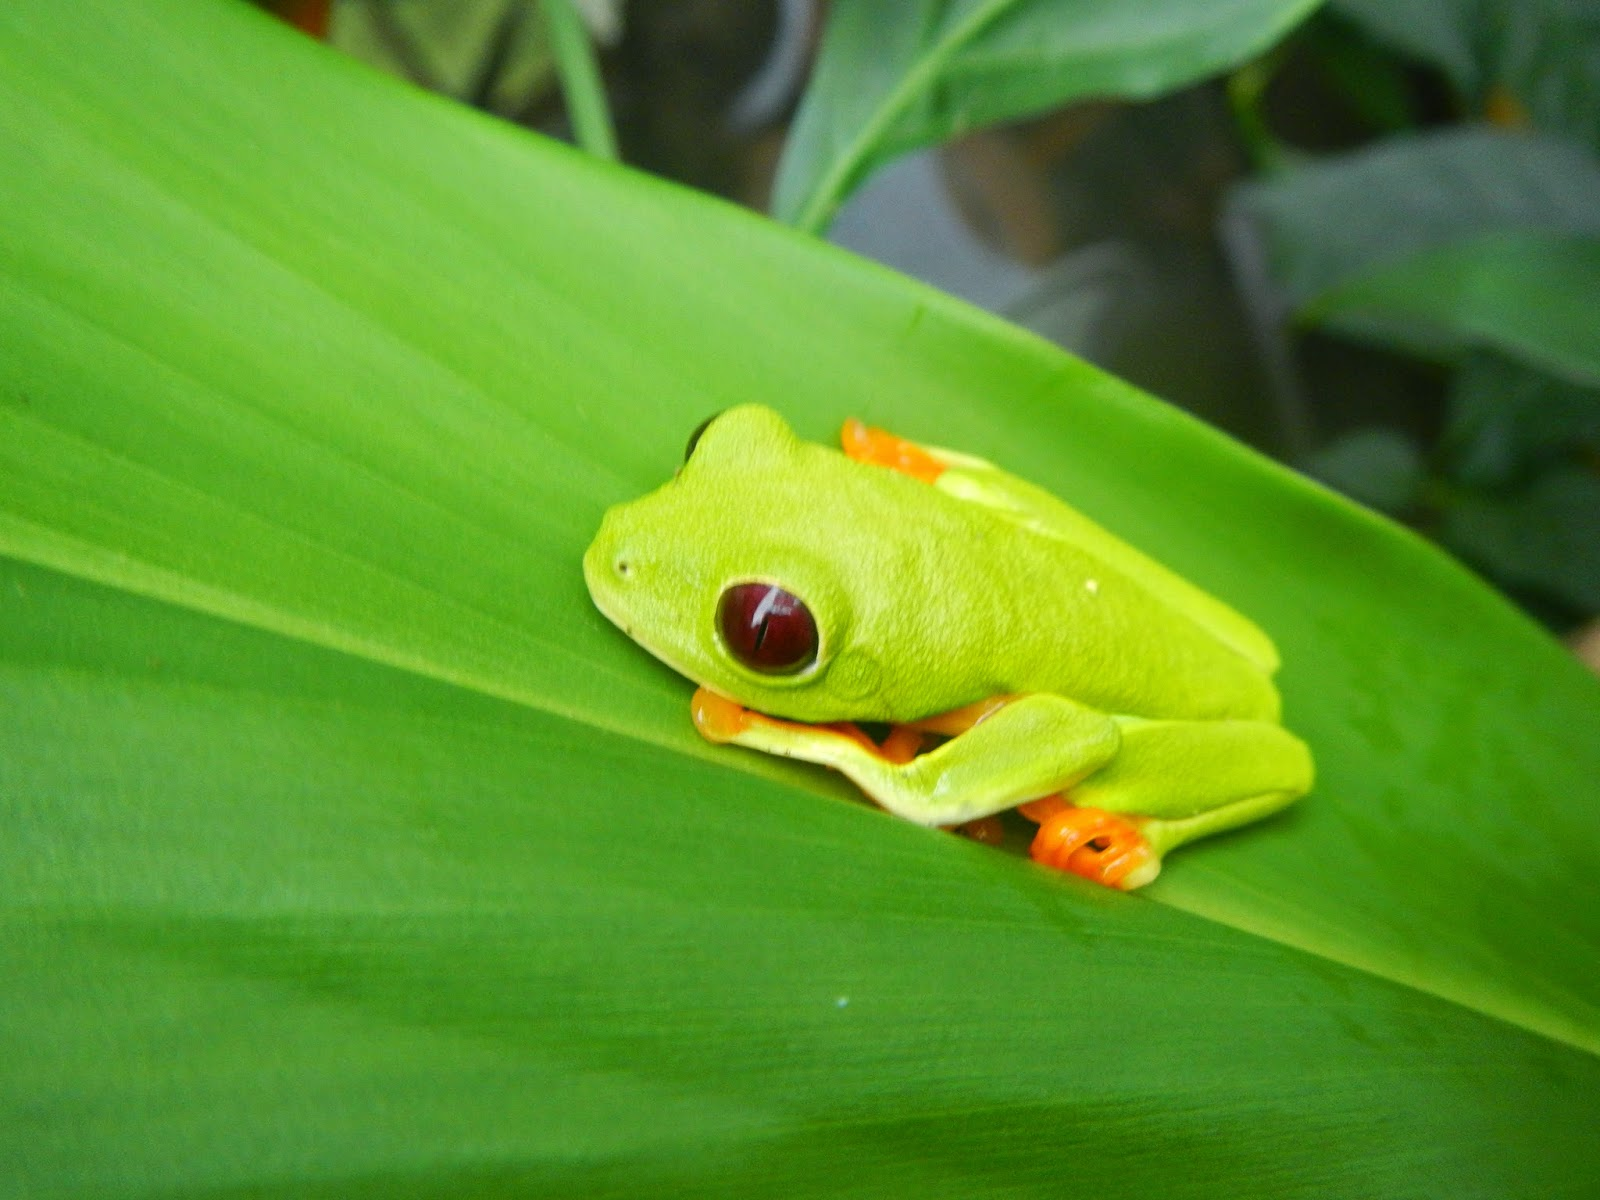 Our Herp Class: The Red-Eyed Tree Frog